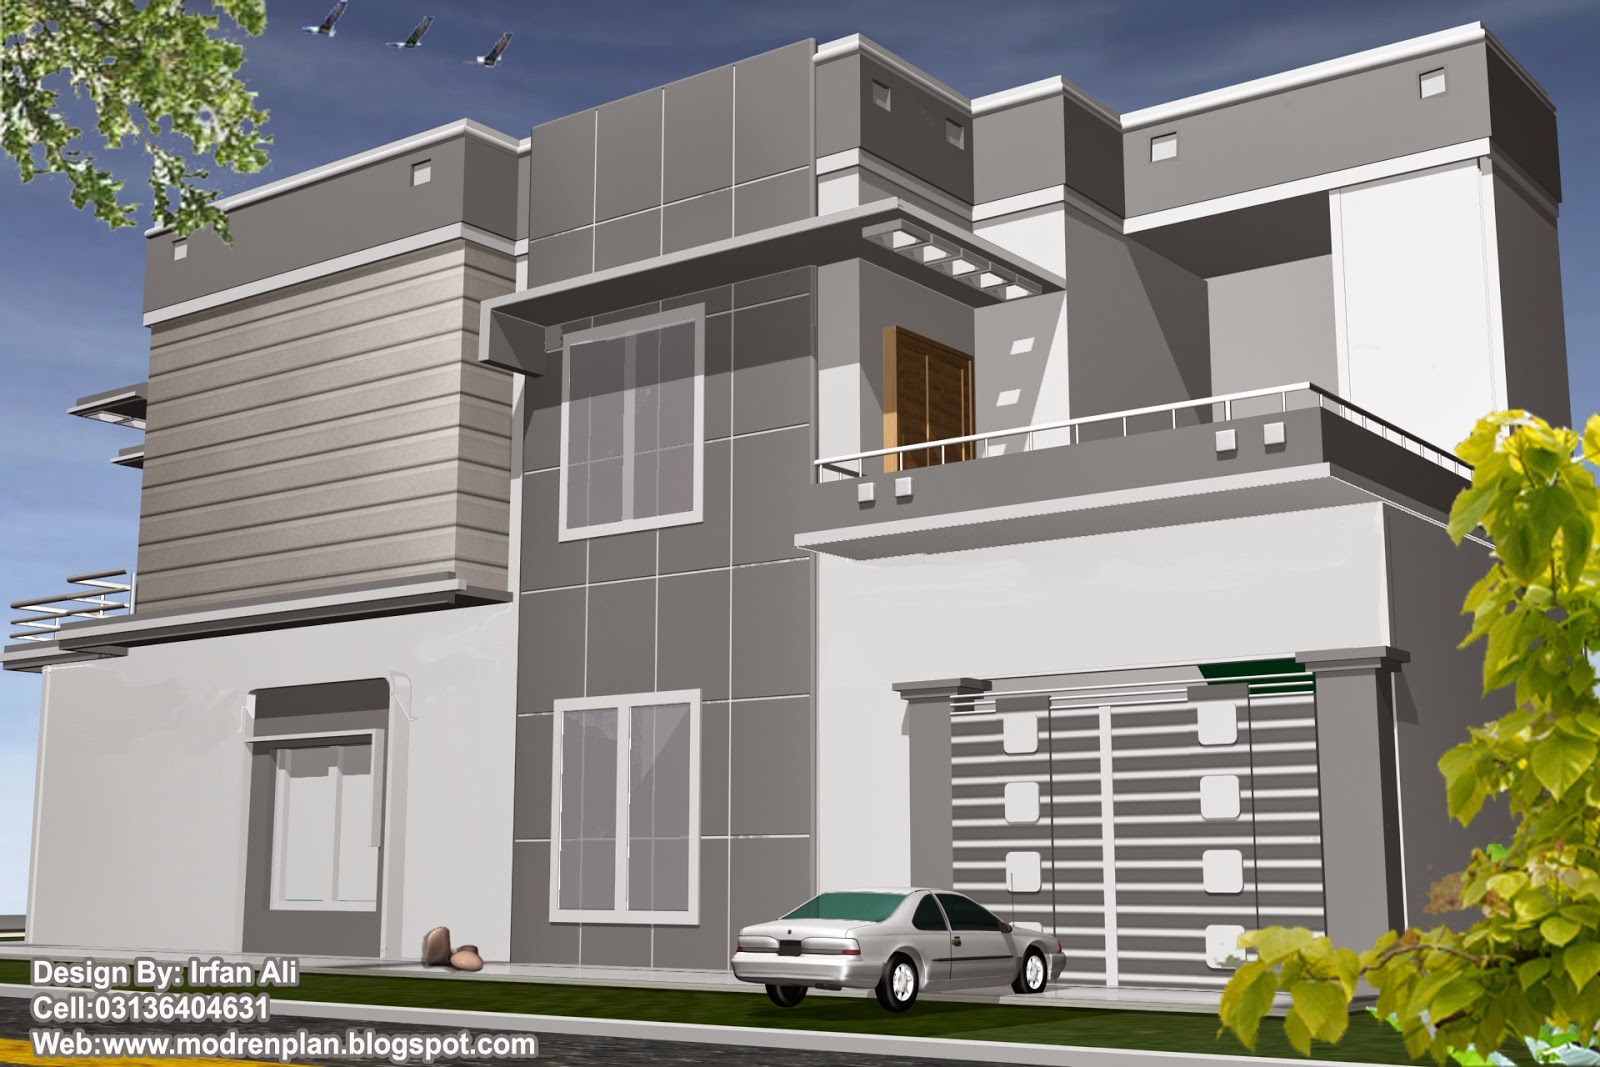 House Front Elevation With Gate : Beautifull house front elevation